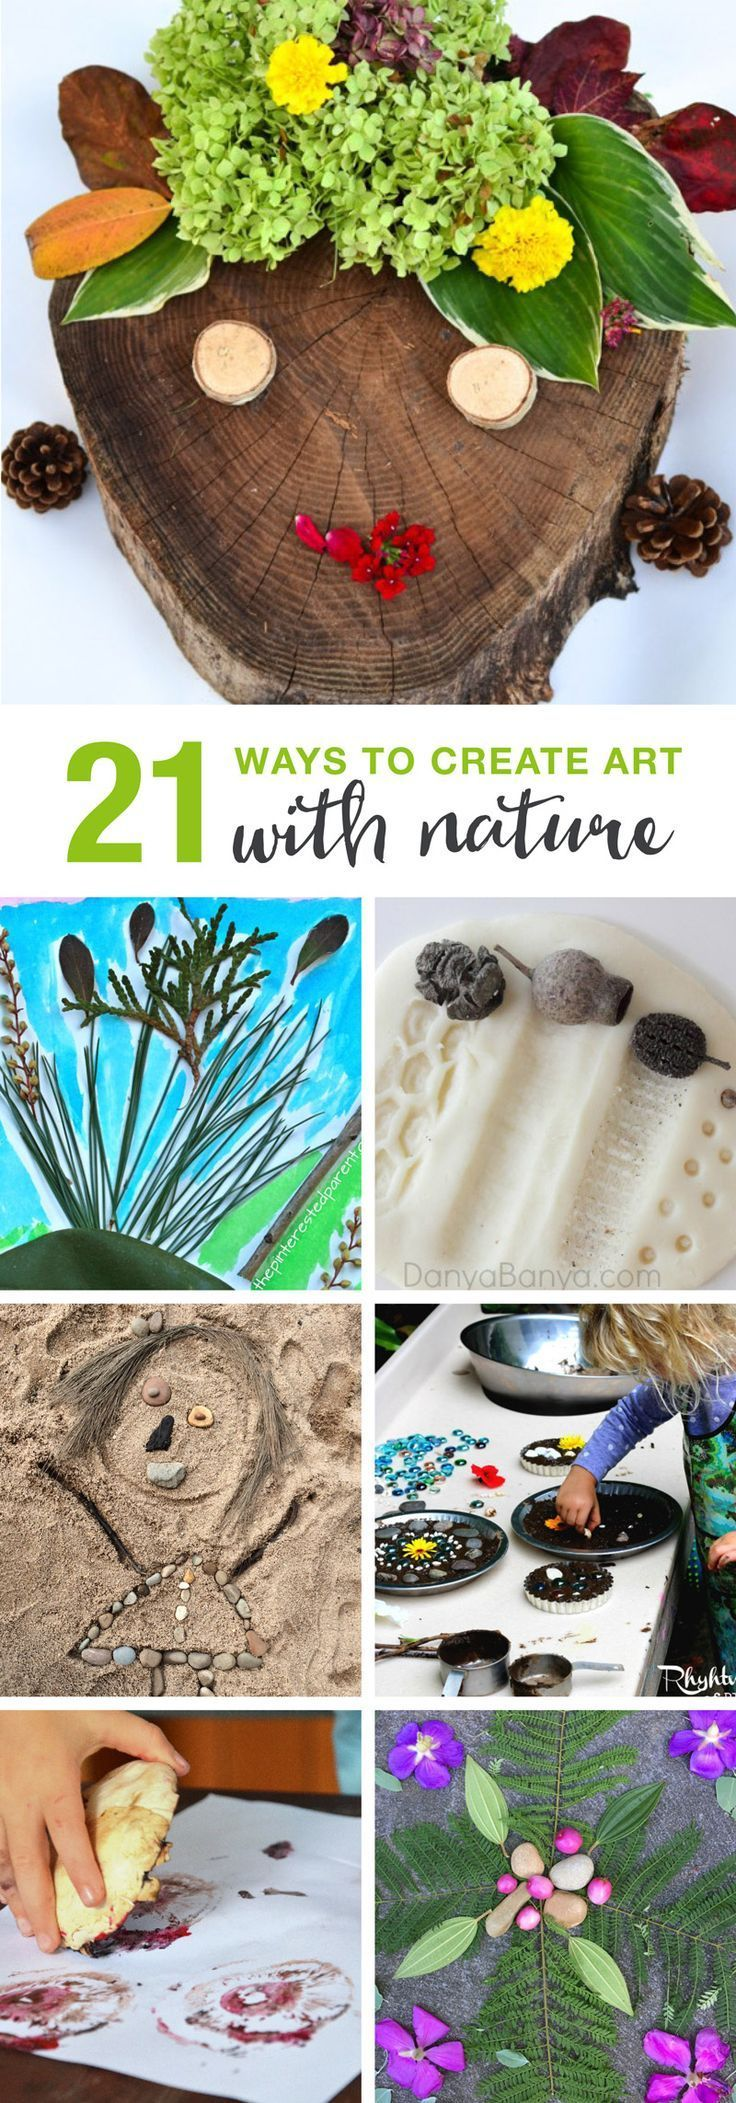 21 ways to create art with nature! Fun outdoor and nature based activities for kids